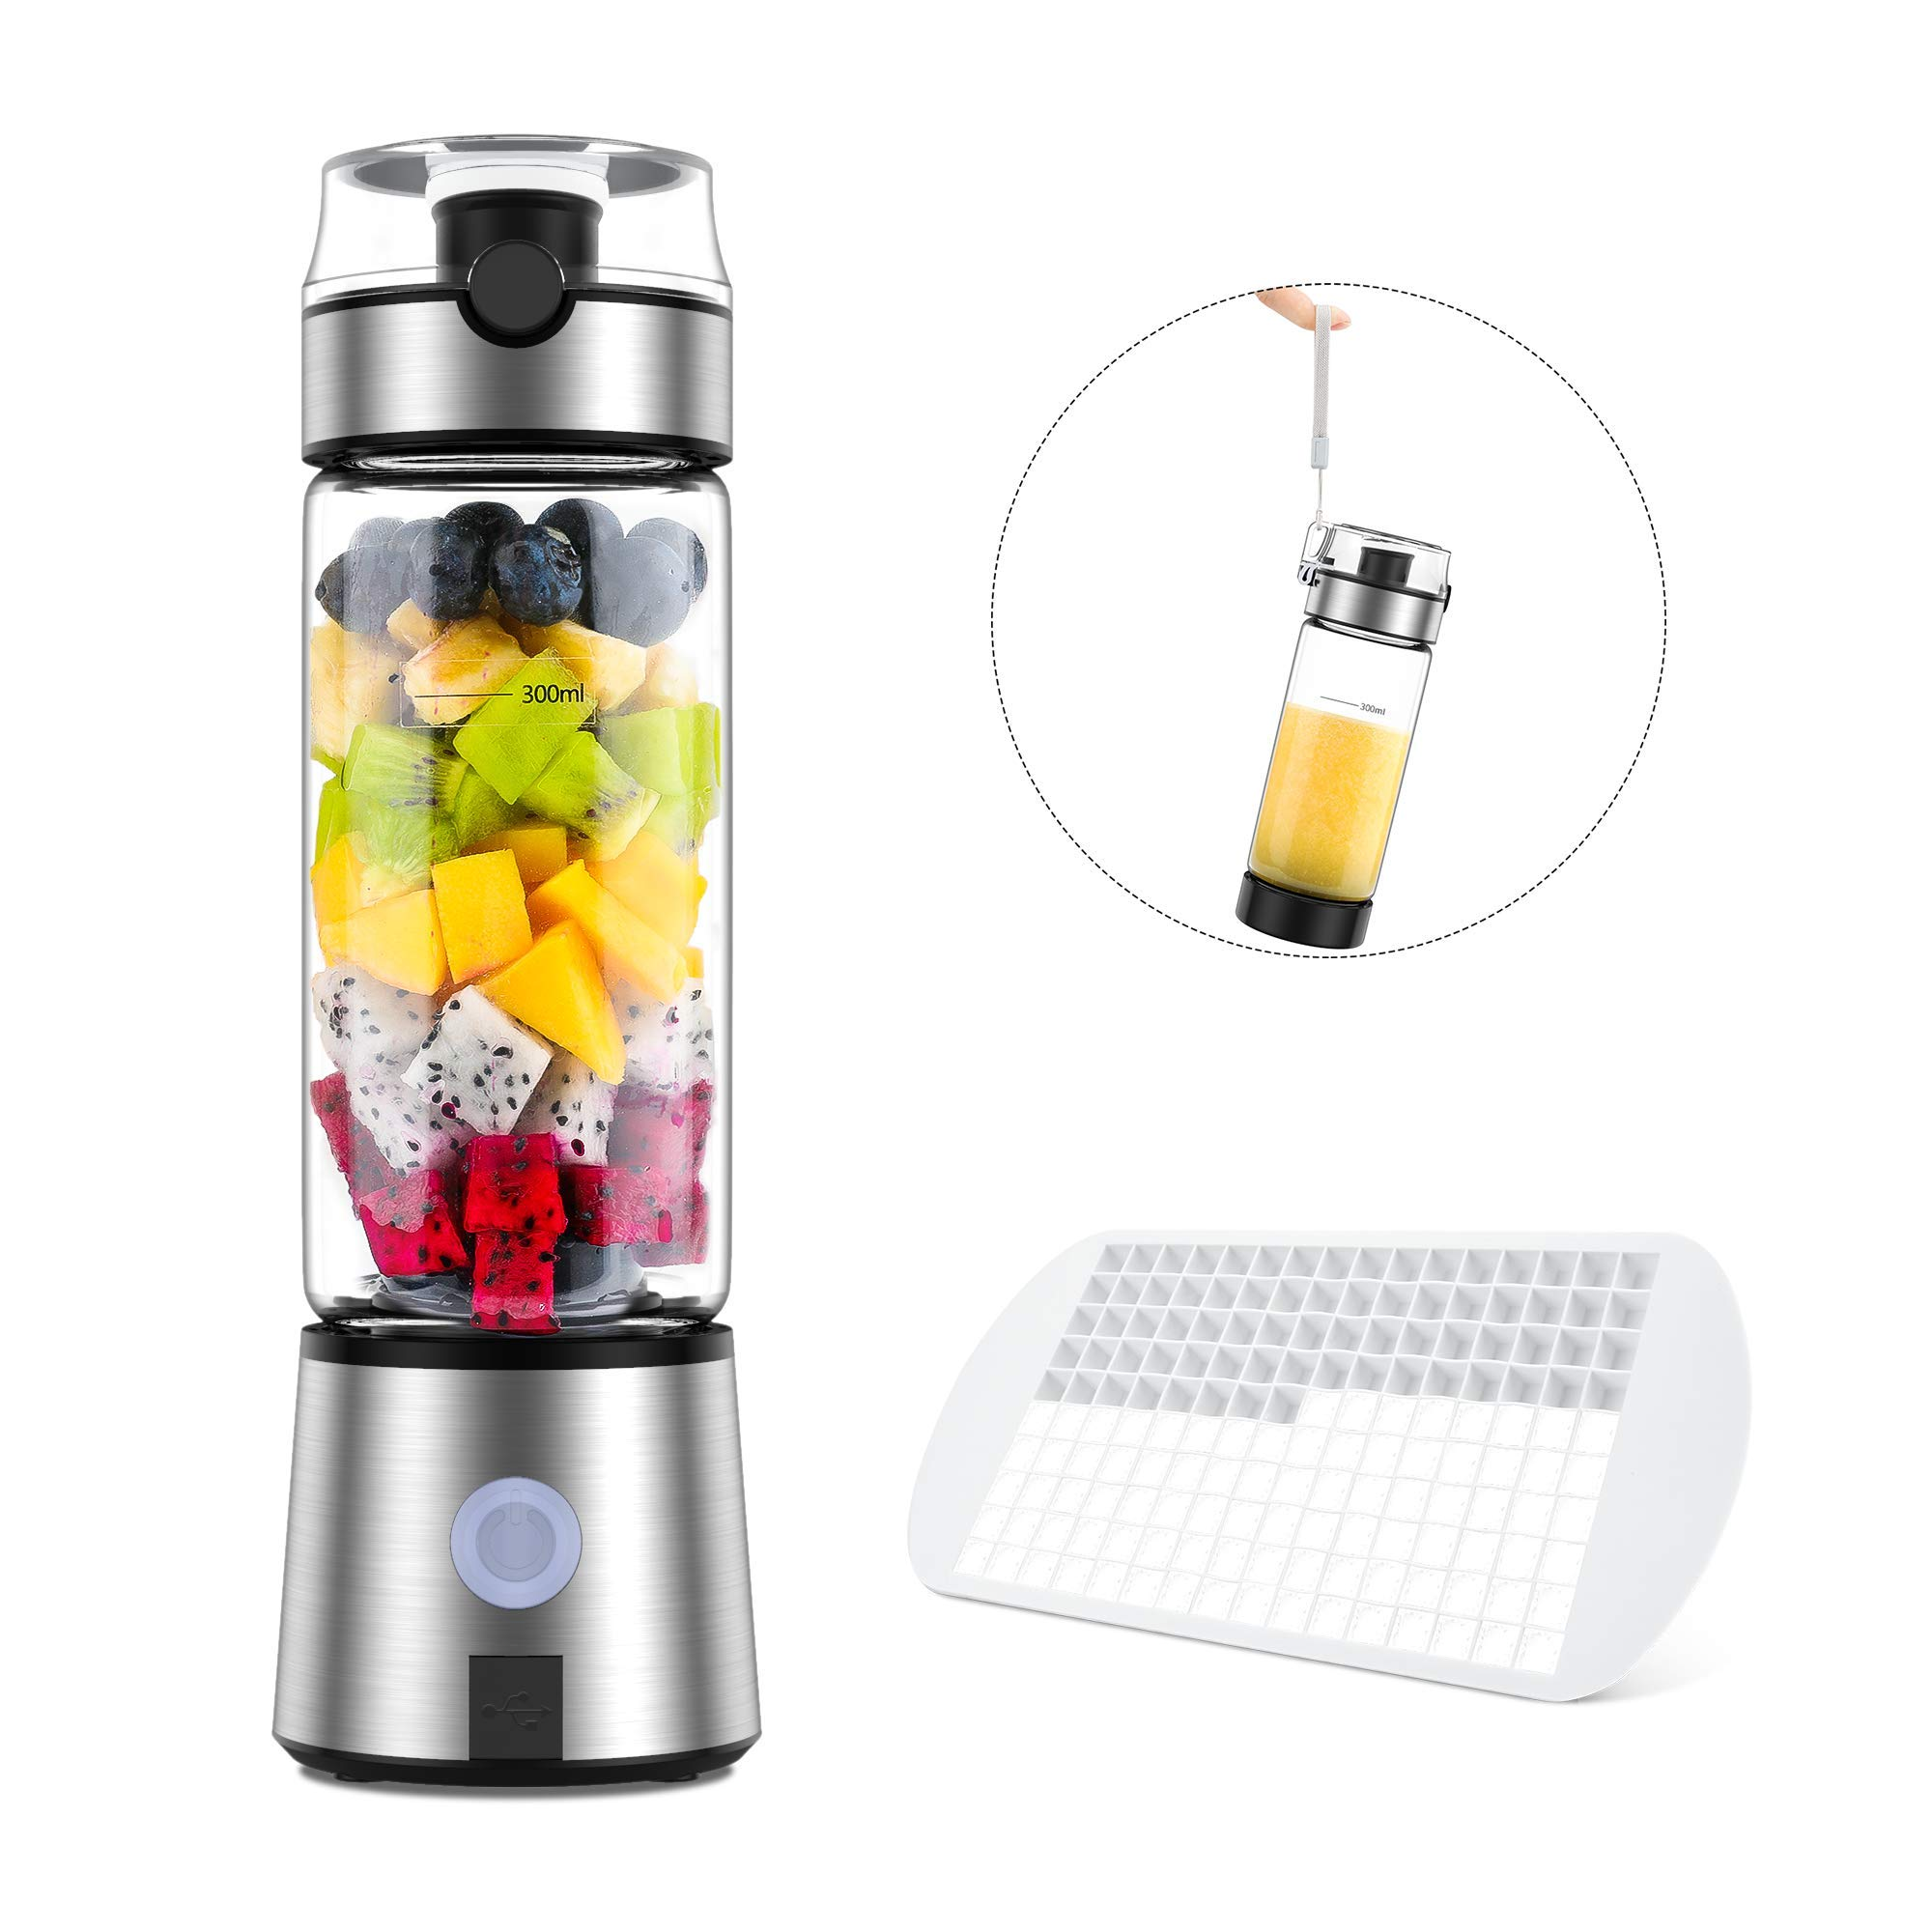 Portable Blender, Ayyie Personal Size Blender, Smoothie Blender USB Rechargeable Shakes and Smoothies Juicer Cup, with 4000mAh USB Batteries, BPA Free, Protein Juice Blender Mixer(SXB01)